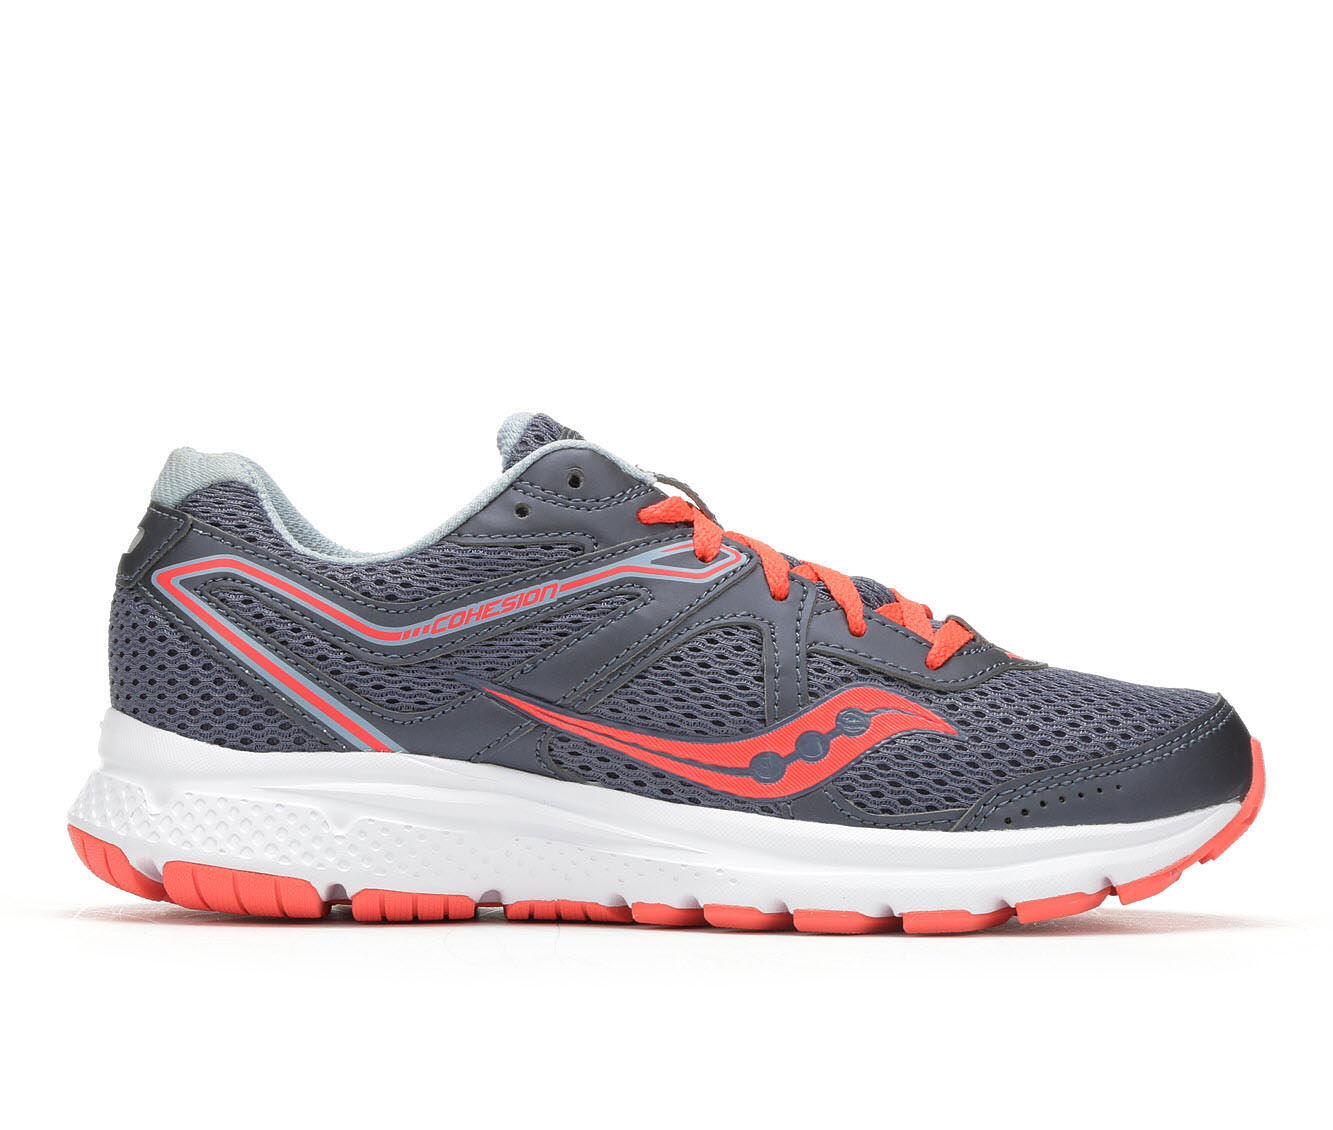 Women's Saucony Cohesion 11 Running Shoes limited edition online nrVJA5C